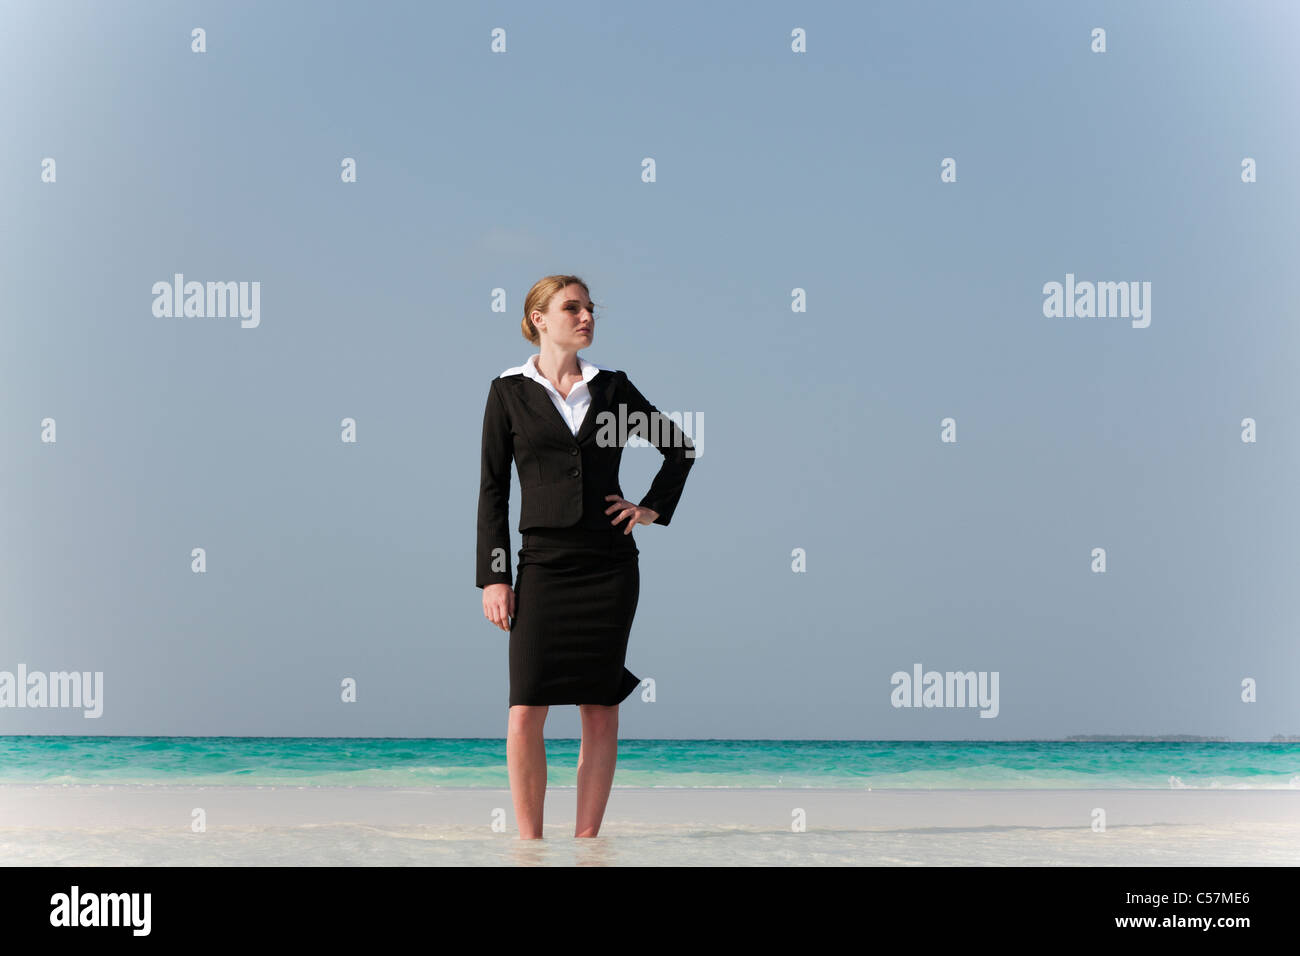 Businesswoman standing on tropical beach - Stock Image